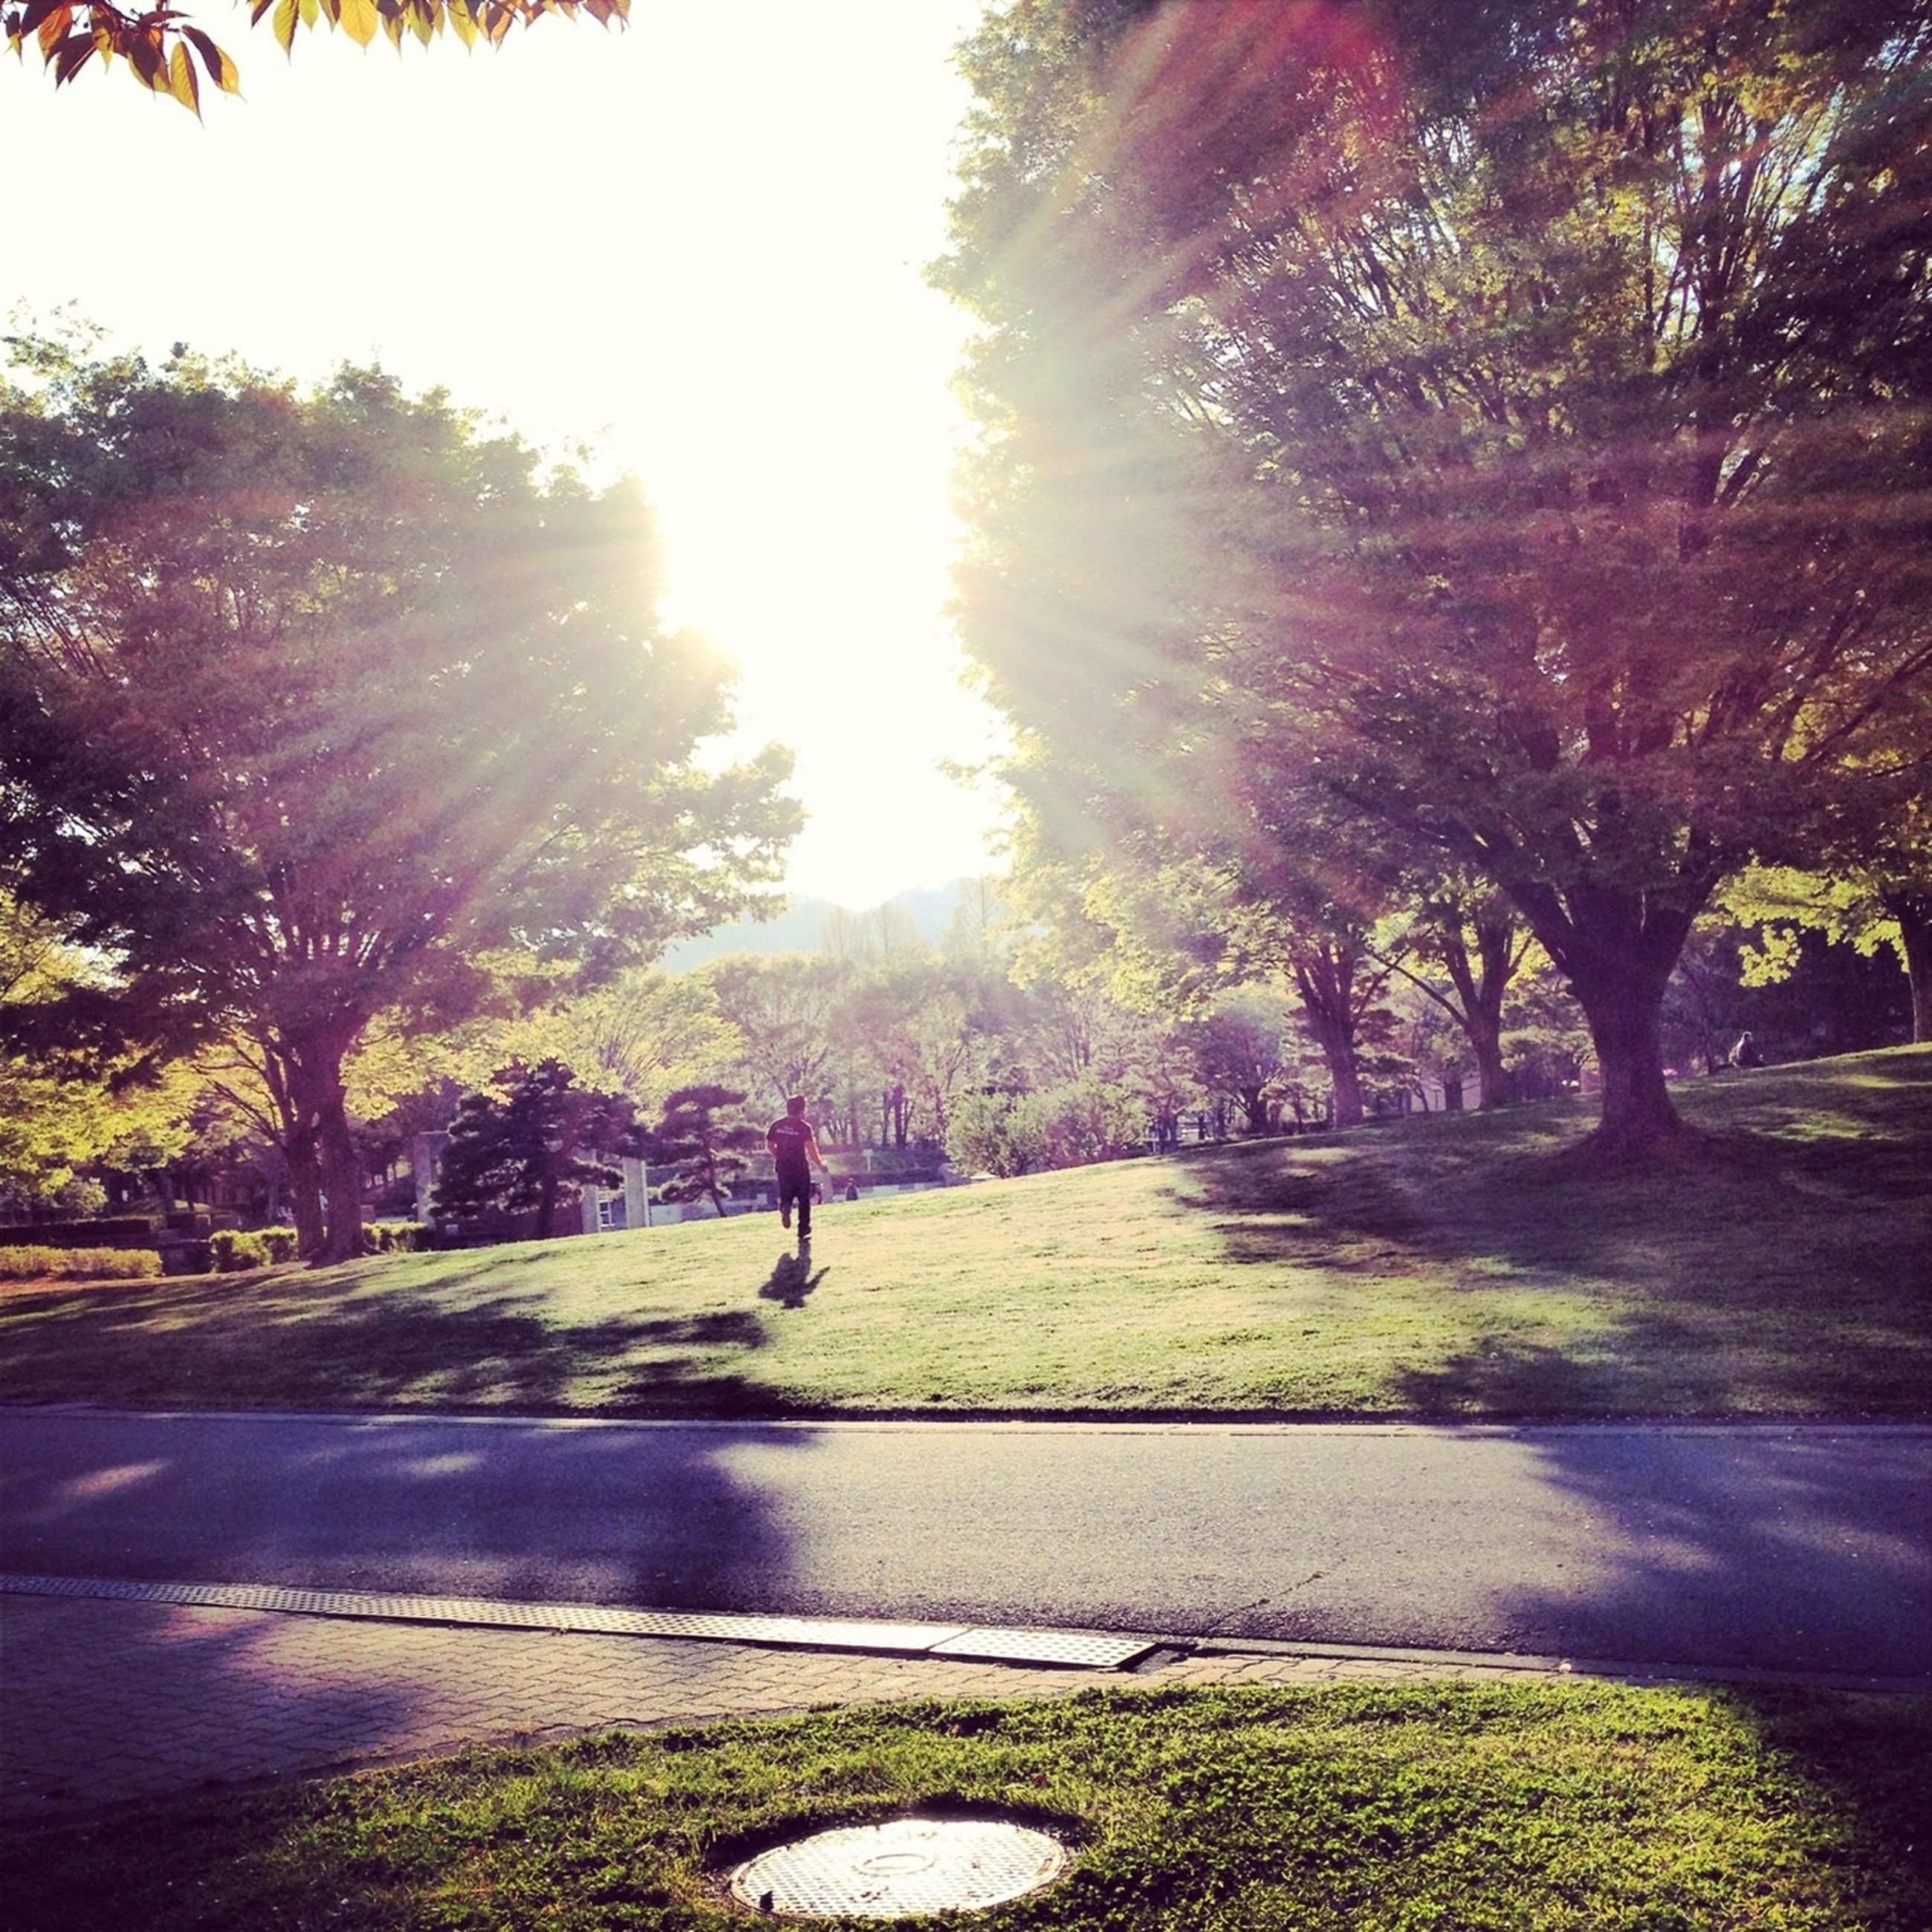 tree, sunlight, sun, shadow, sunbeam, road, park - man made space, lens flare, street, transportation, sunny, growth, footpath, the way forward, grass, lifestyles, day, nature, leisure activity